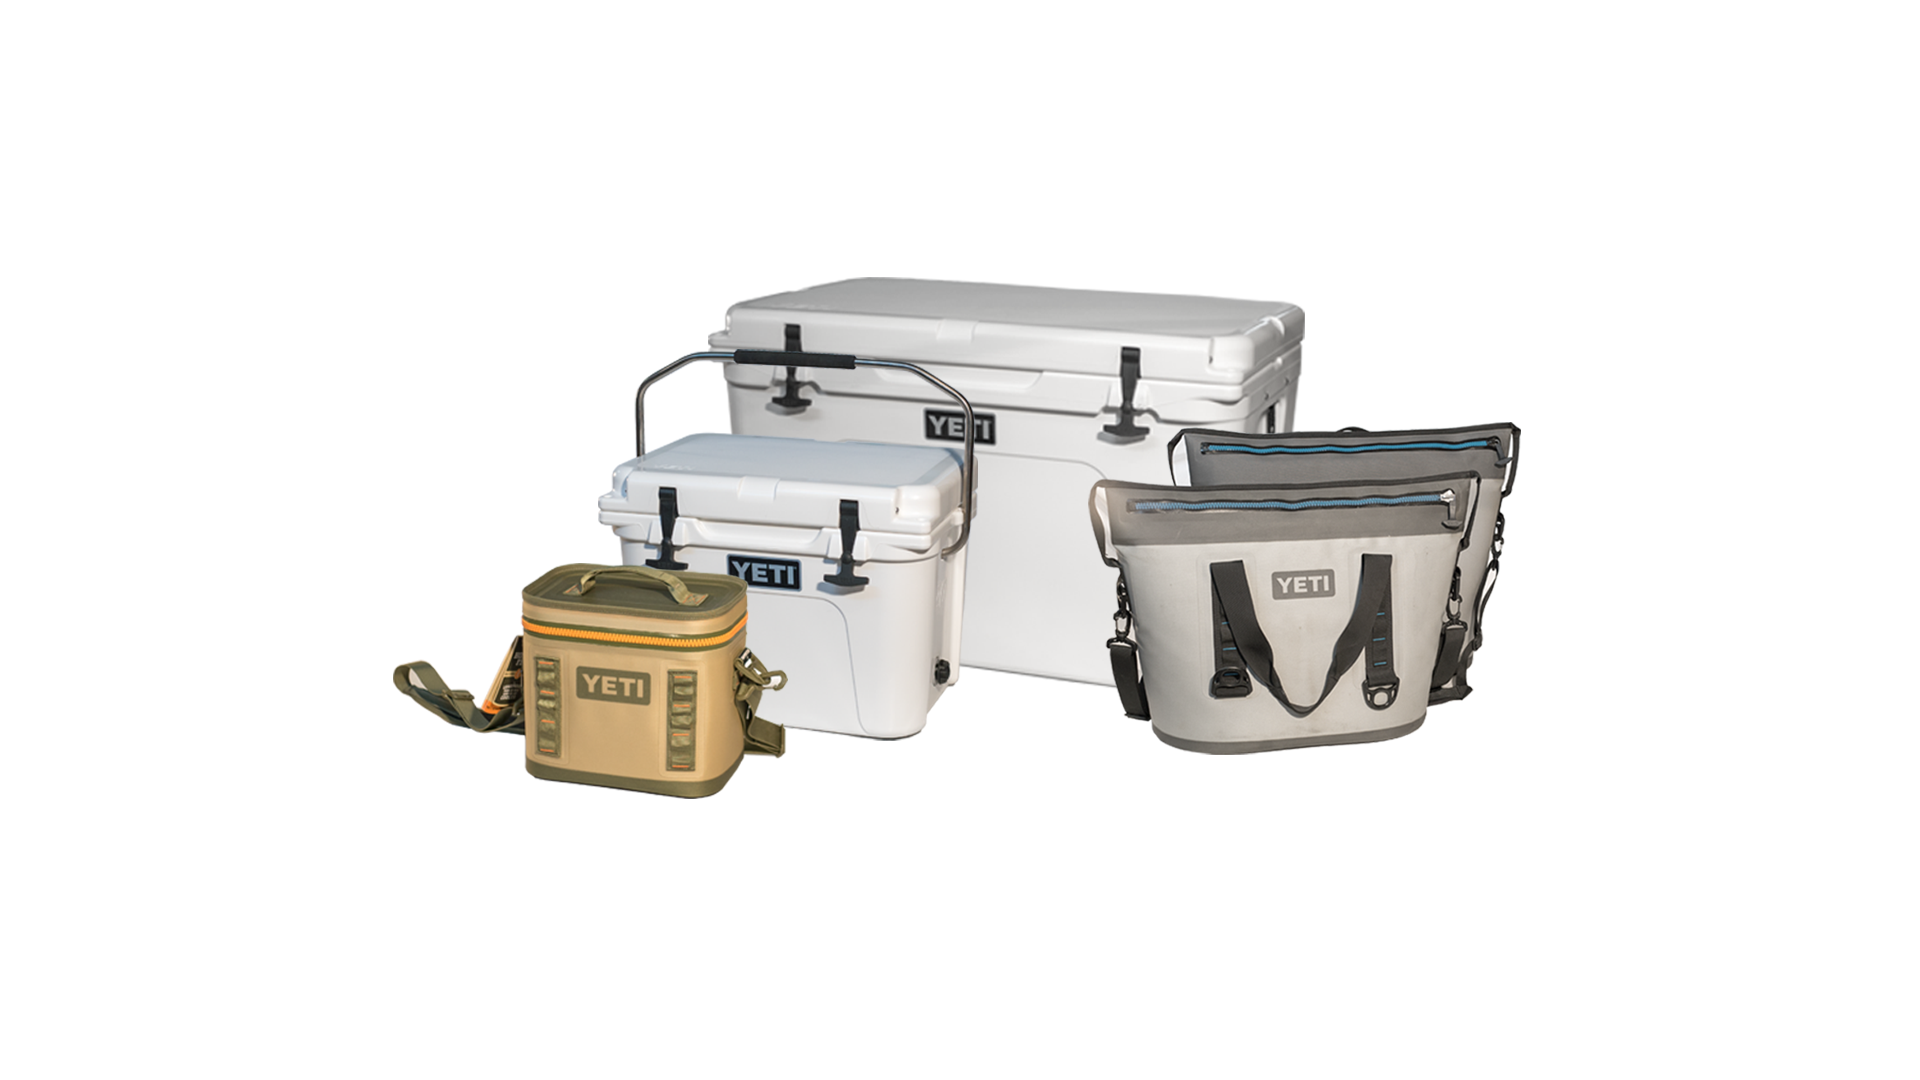 YETI COOLERS - YETI COOLERS.BBR has any cooler you'd need for a day on the river or a week. Our stock includes the Yeti 110, 105,65, 55, 45, Roadie 20, Hopper 40 & 30, Flip 12 & 8. Prices vary, please inquire about specifics.